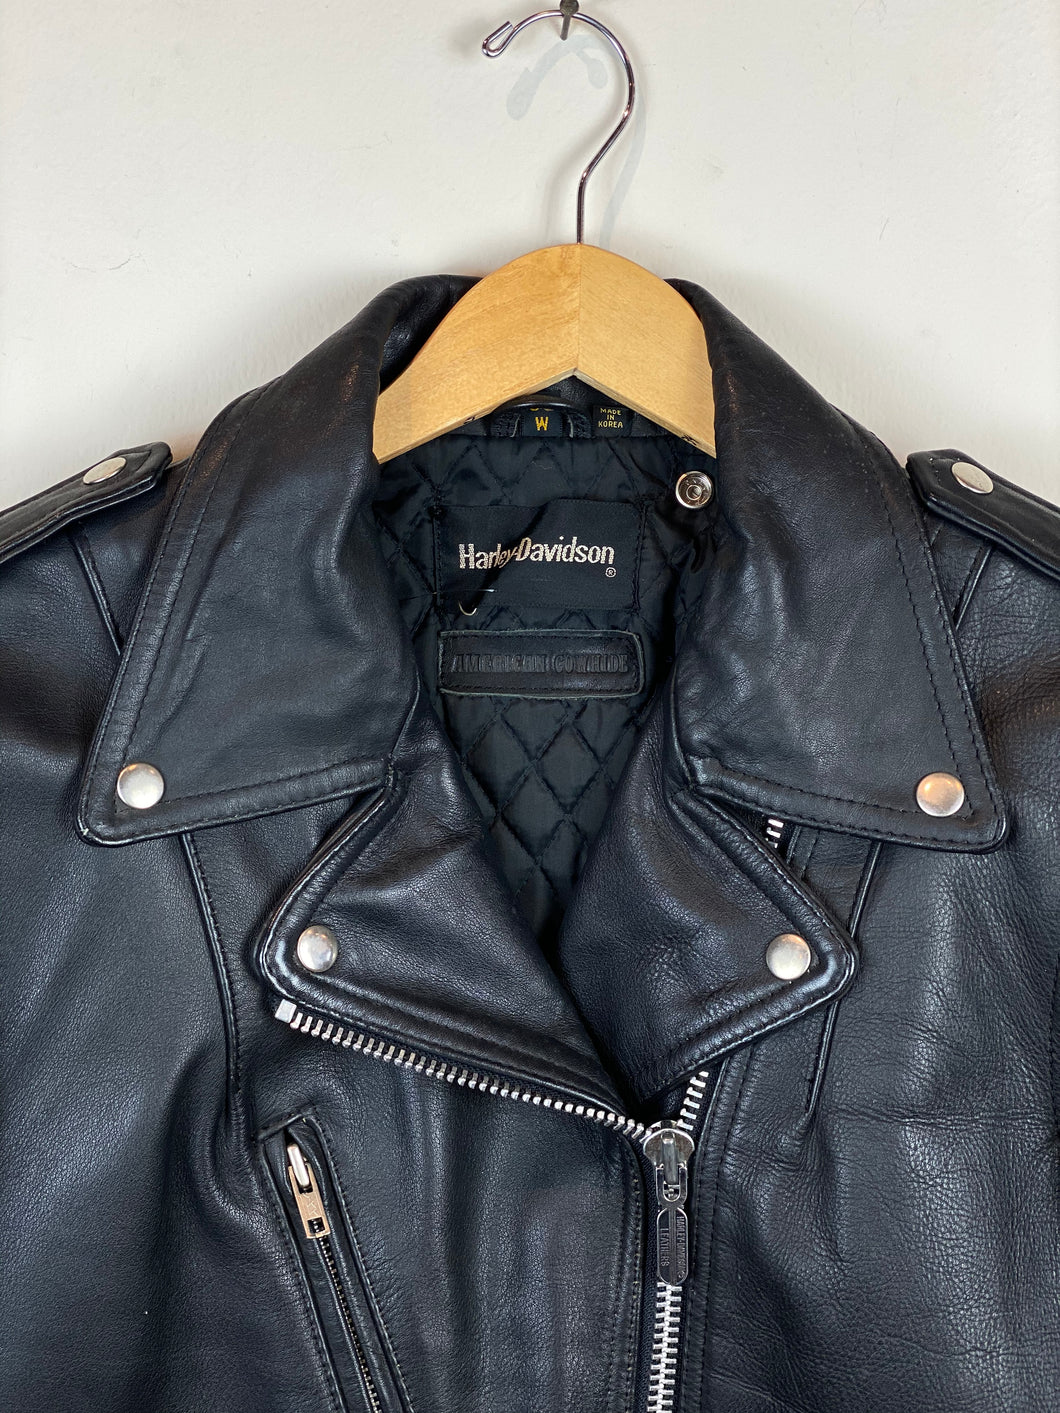 80s Harley Davidson Leather Jacket